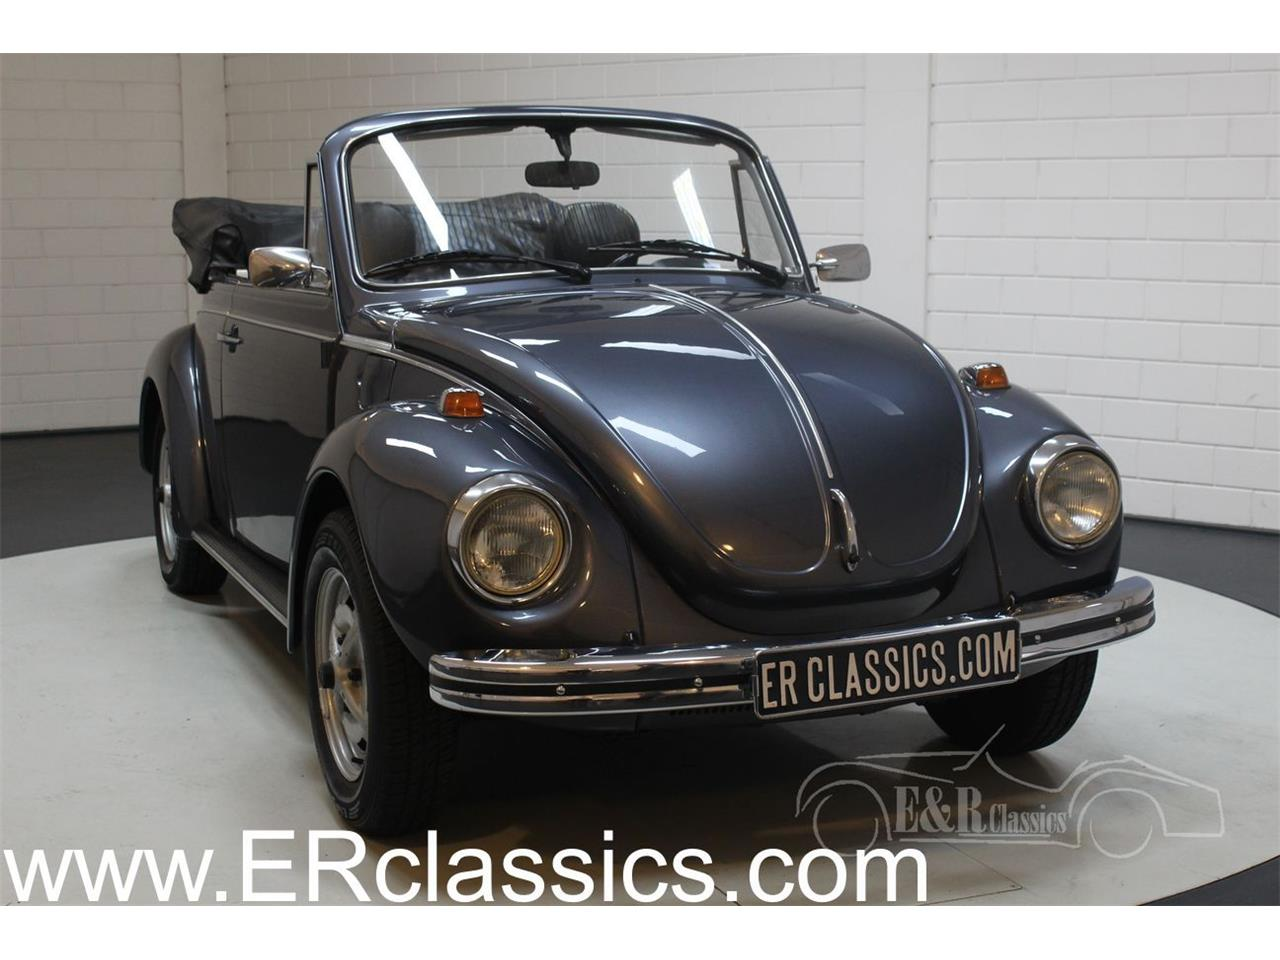 Large Picture of 1974 Beetle located in Waalwijk Noord-Brabant - $27,950.00 - QC3W